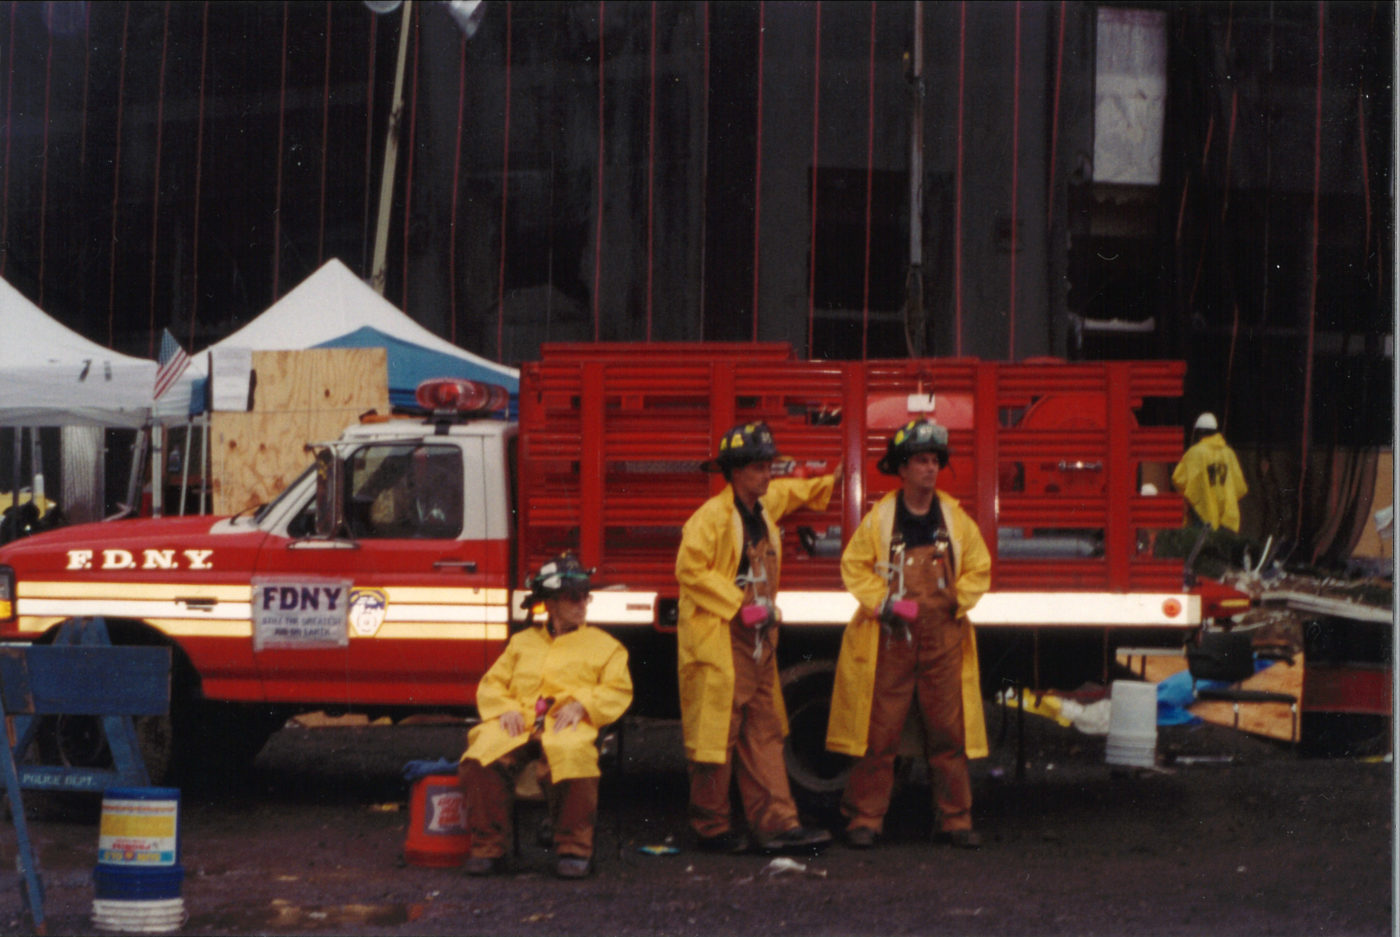 Three Fire Fighters at the FDNY Truck at Ground Zero